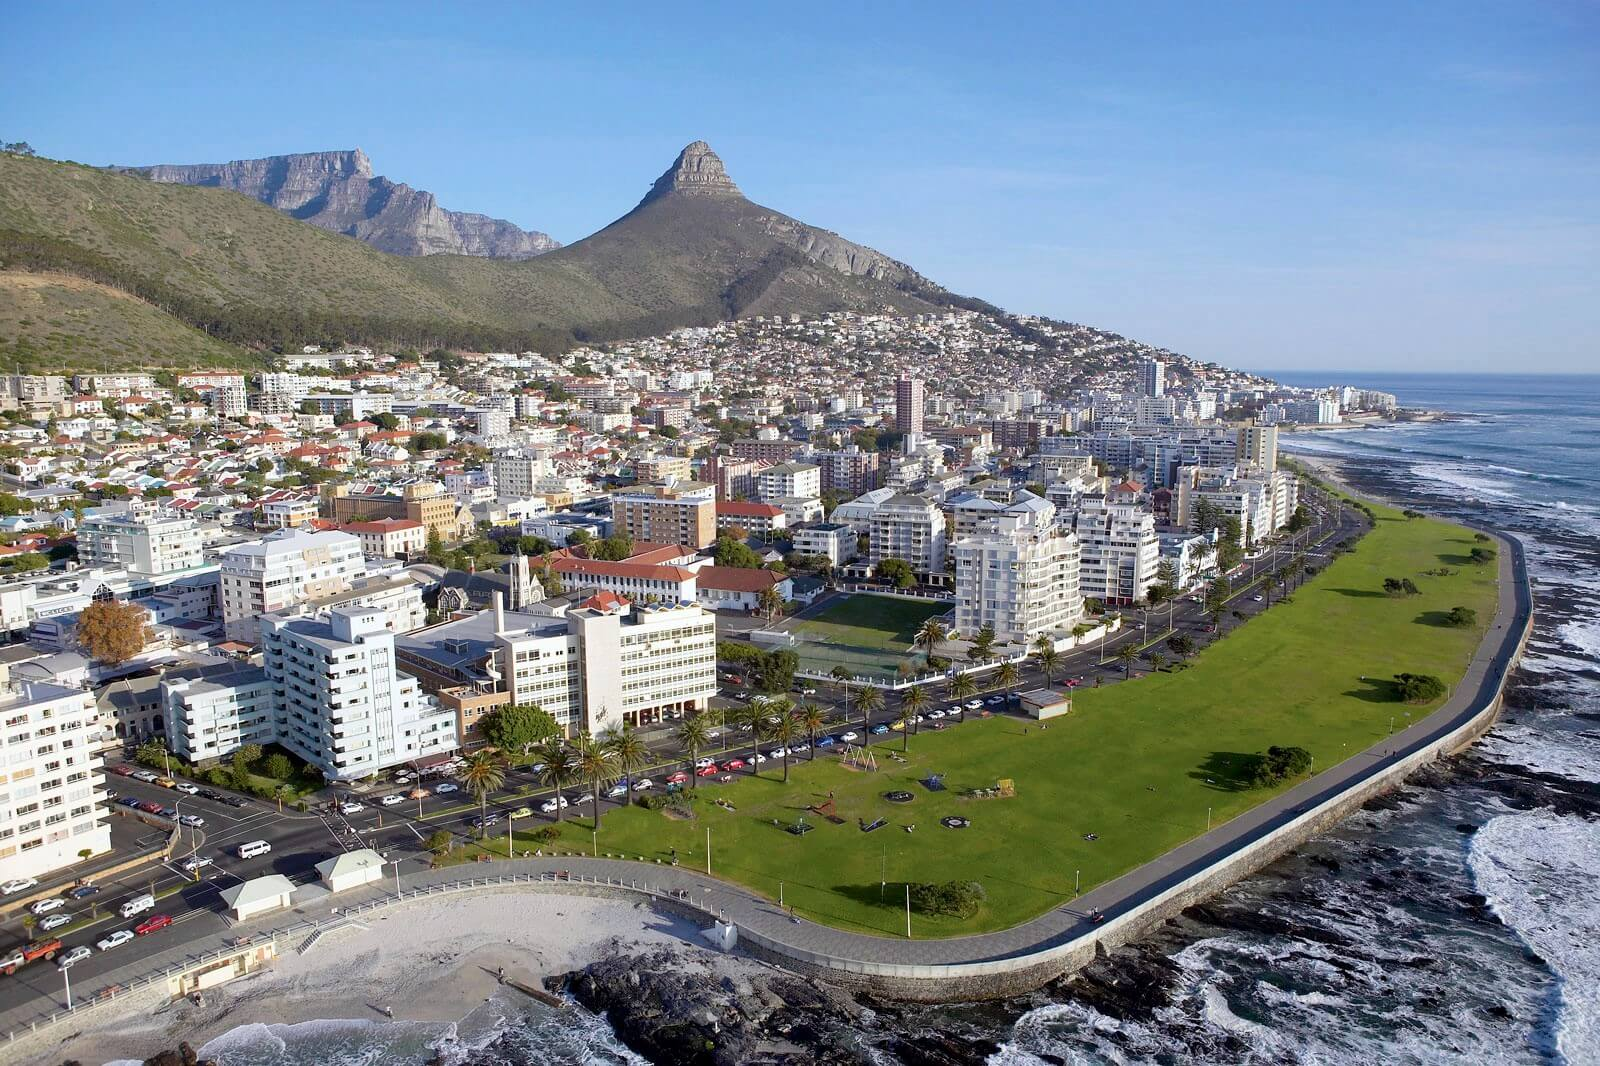 Aerial_View_of_Sea_Point,_Cape_Town_South_Africa (1)